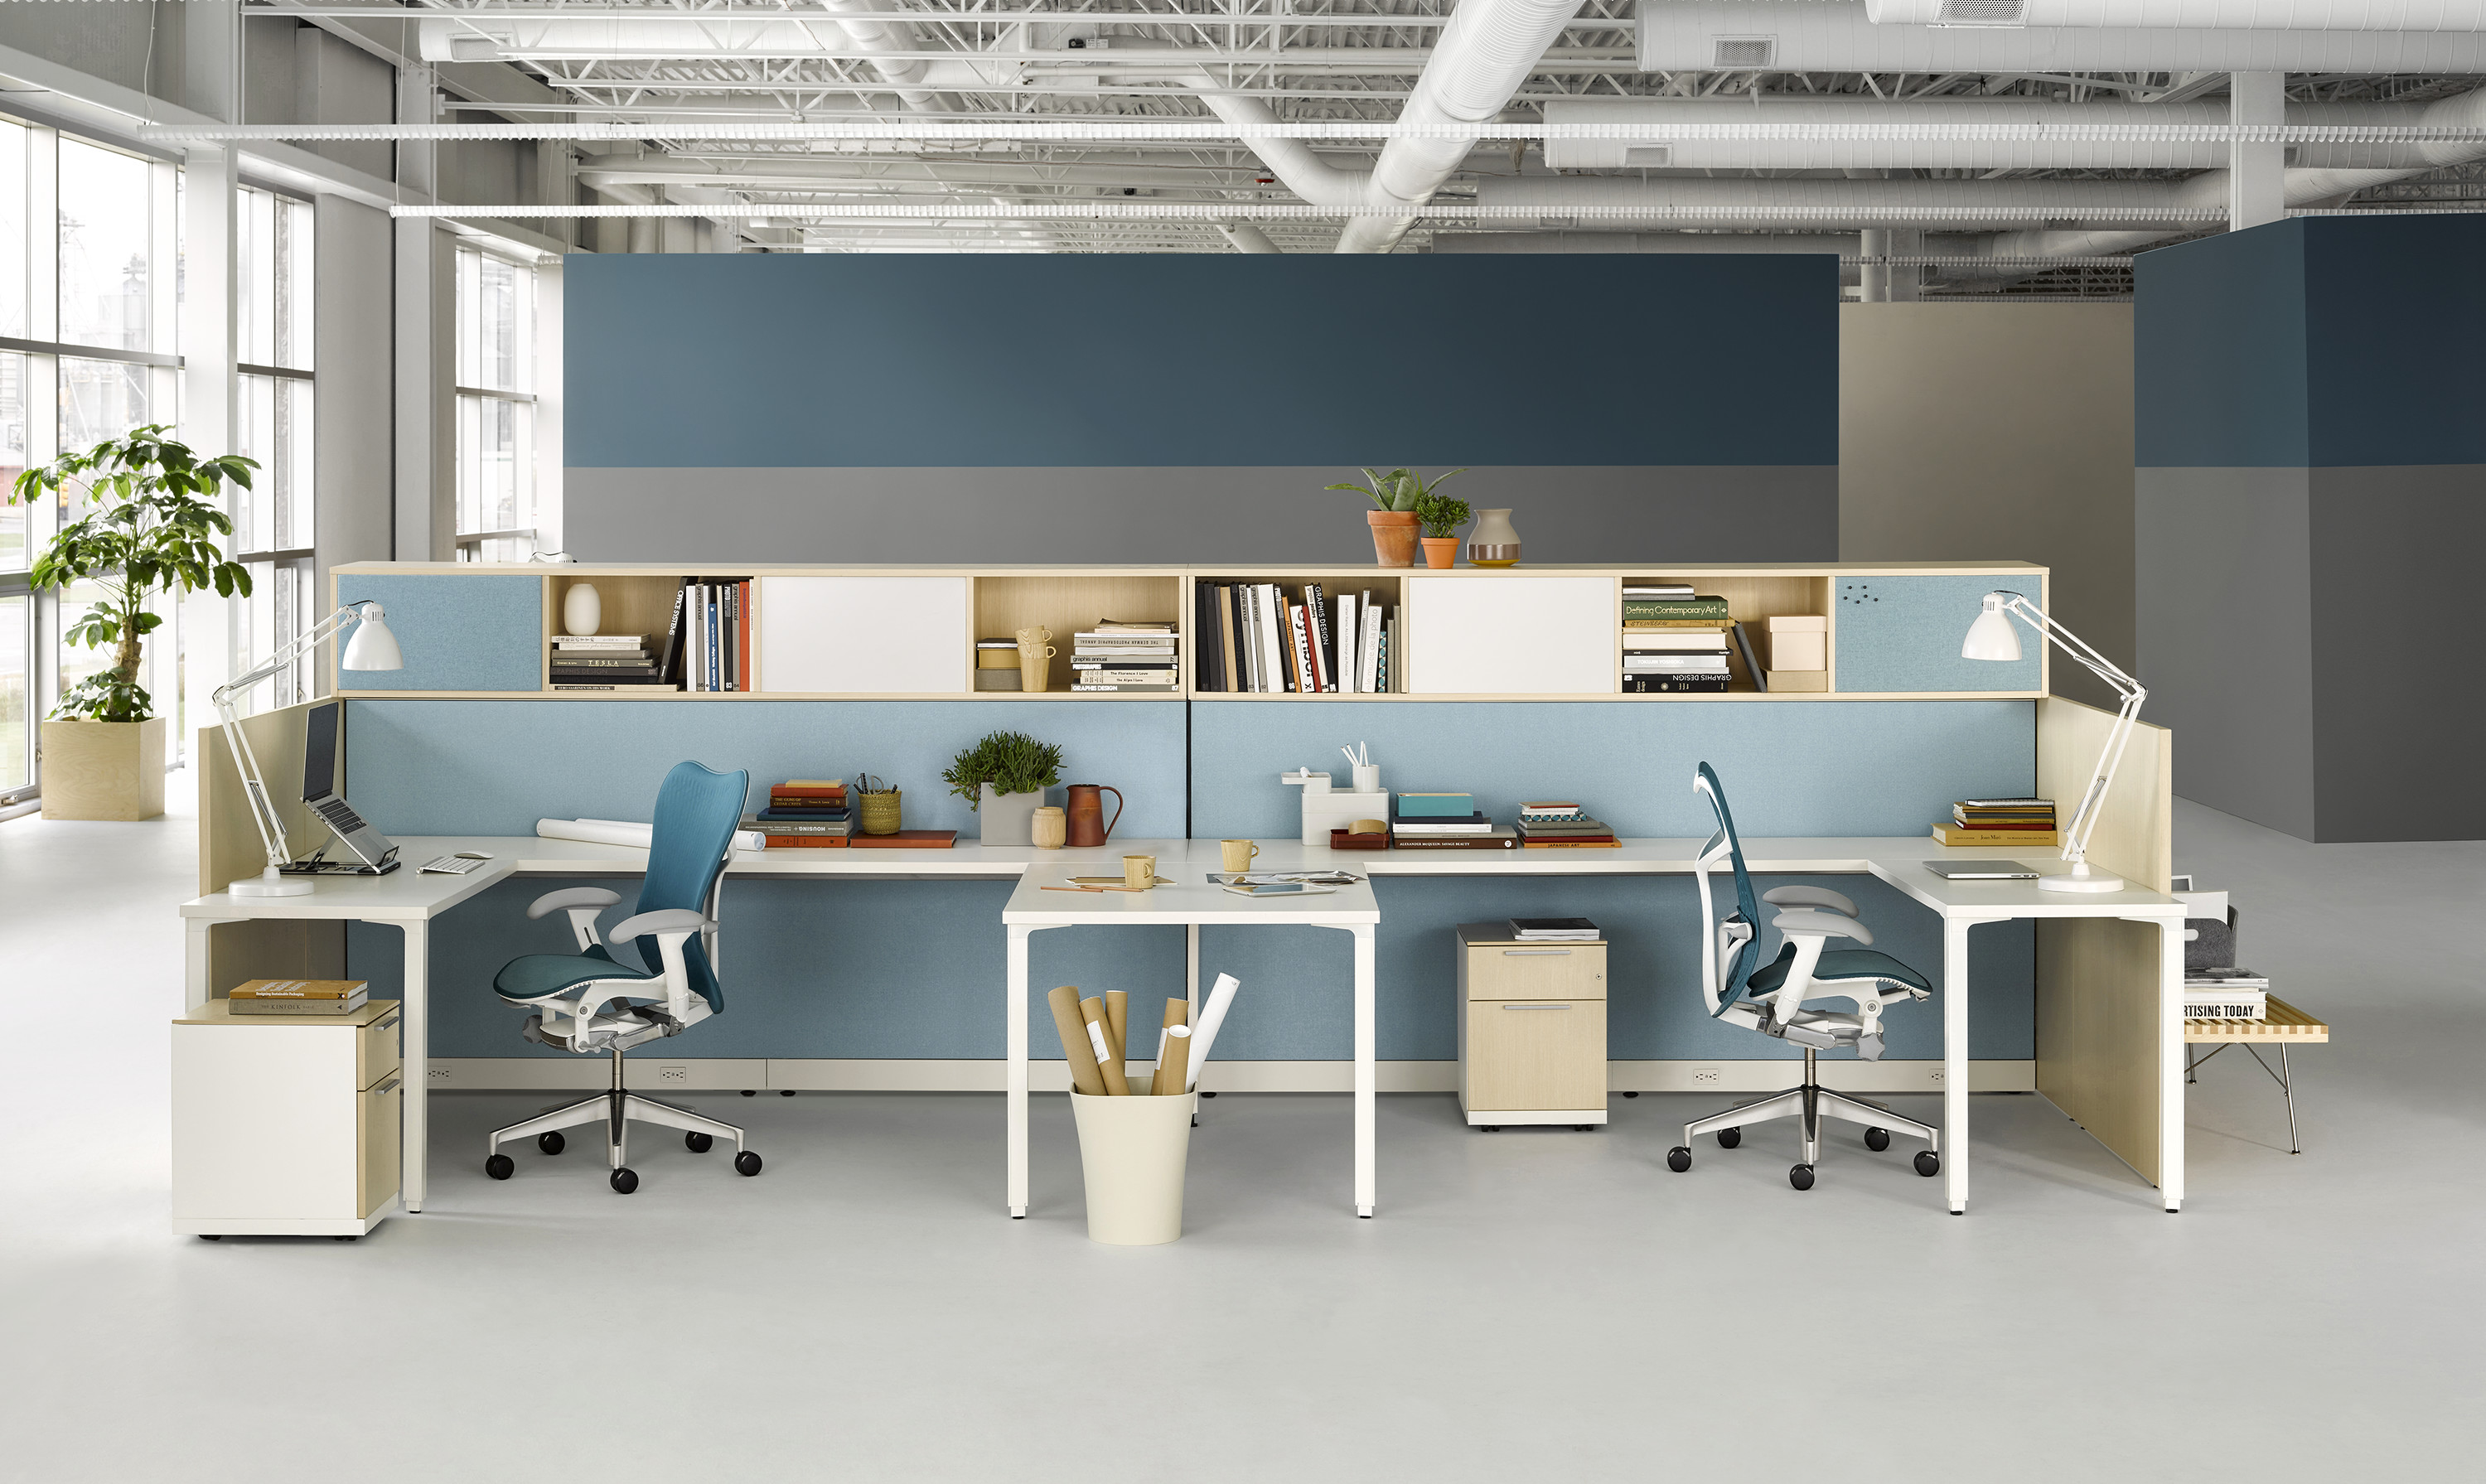 Office space design and planning where to start for Office space